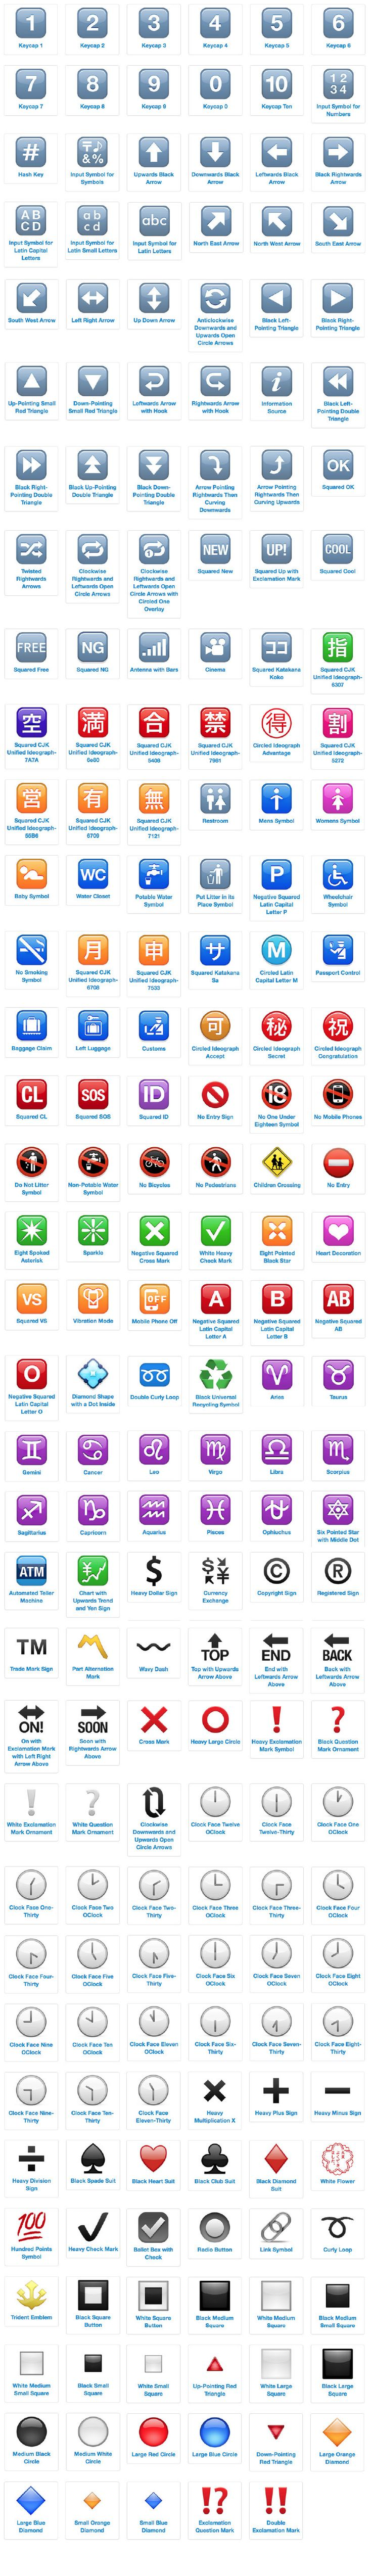 emoji icon list symbols with meanings and definitions A